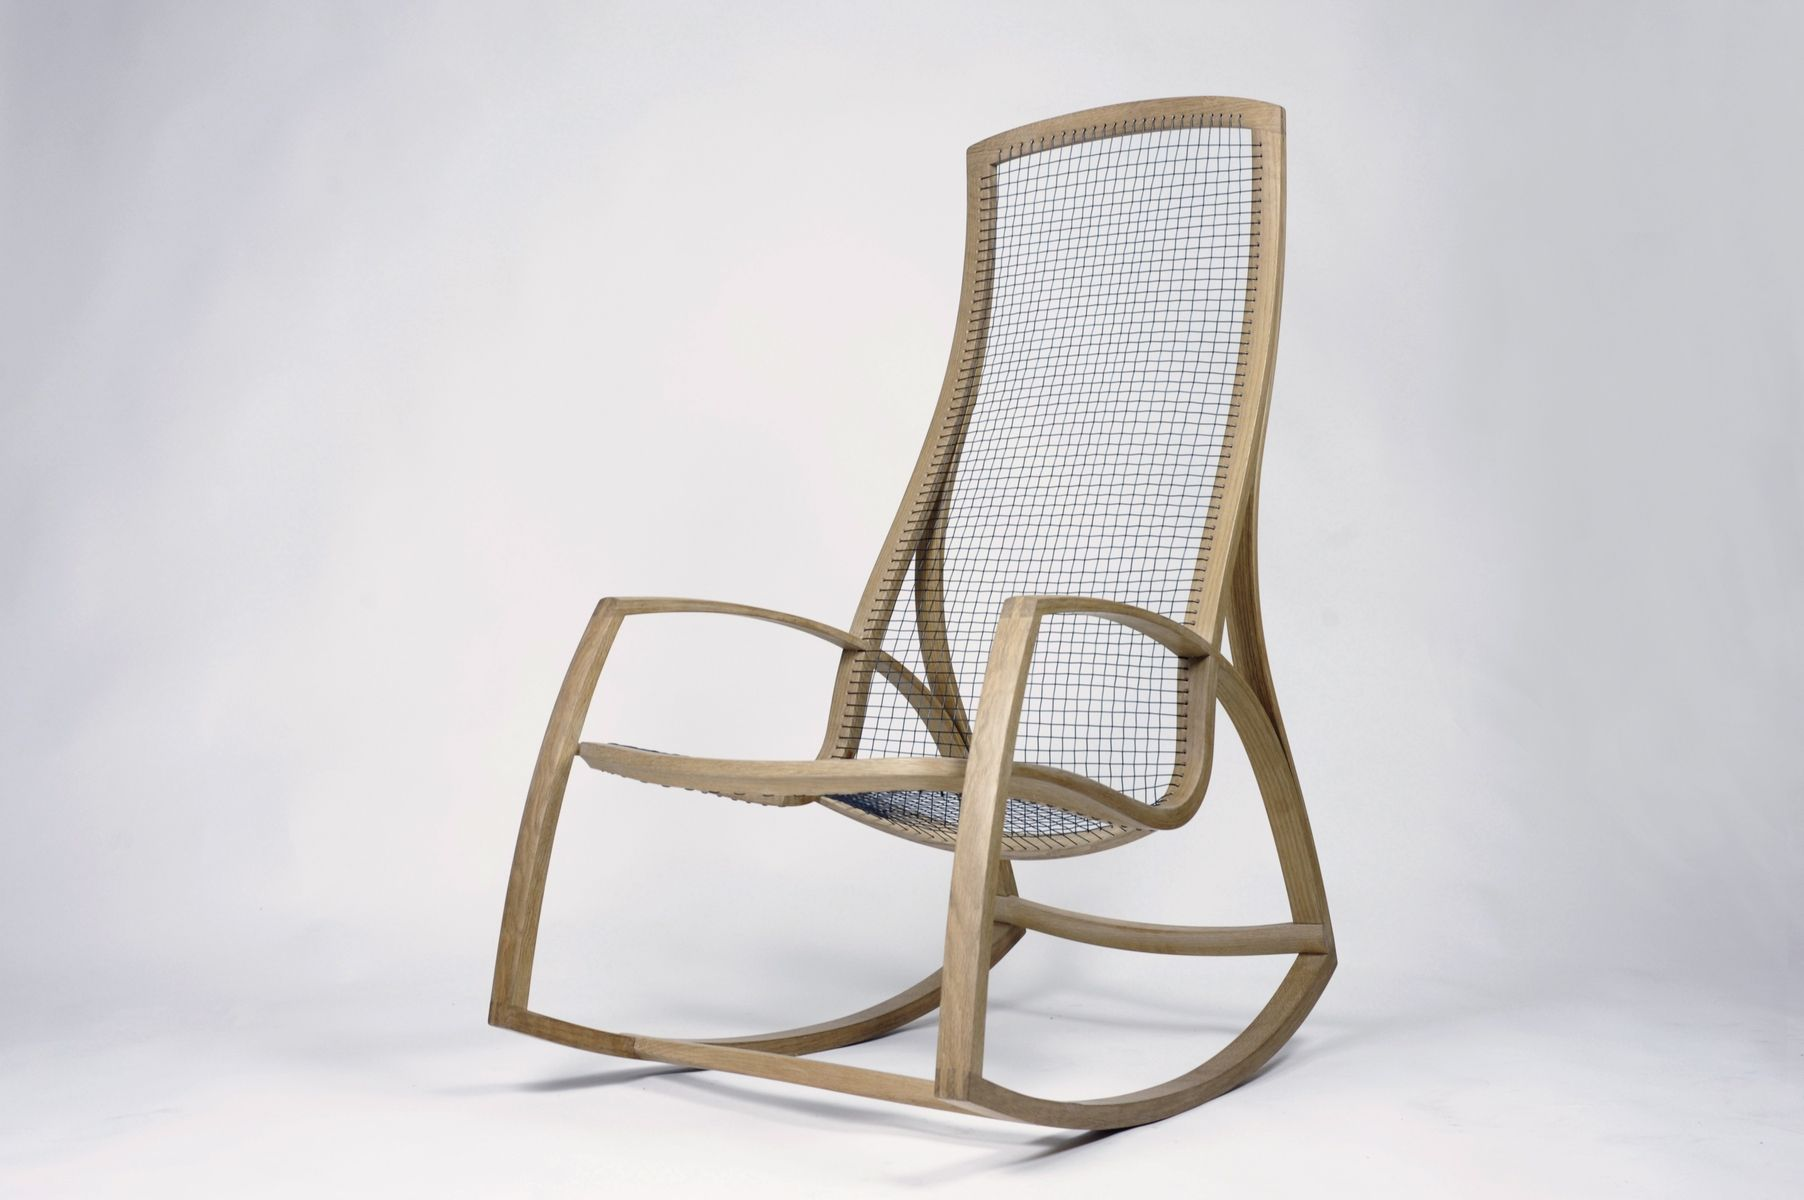 Handmade Rocking Chair No 2 by Reed Hansuld Fine Furniture